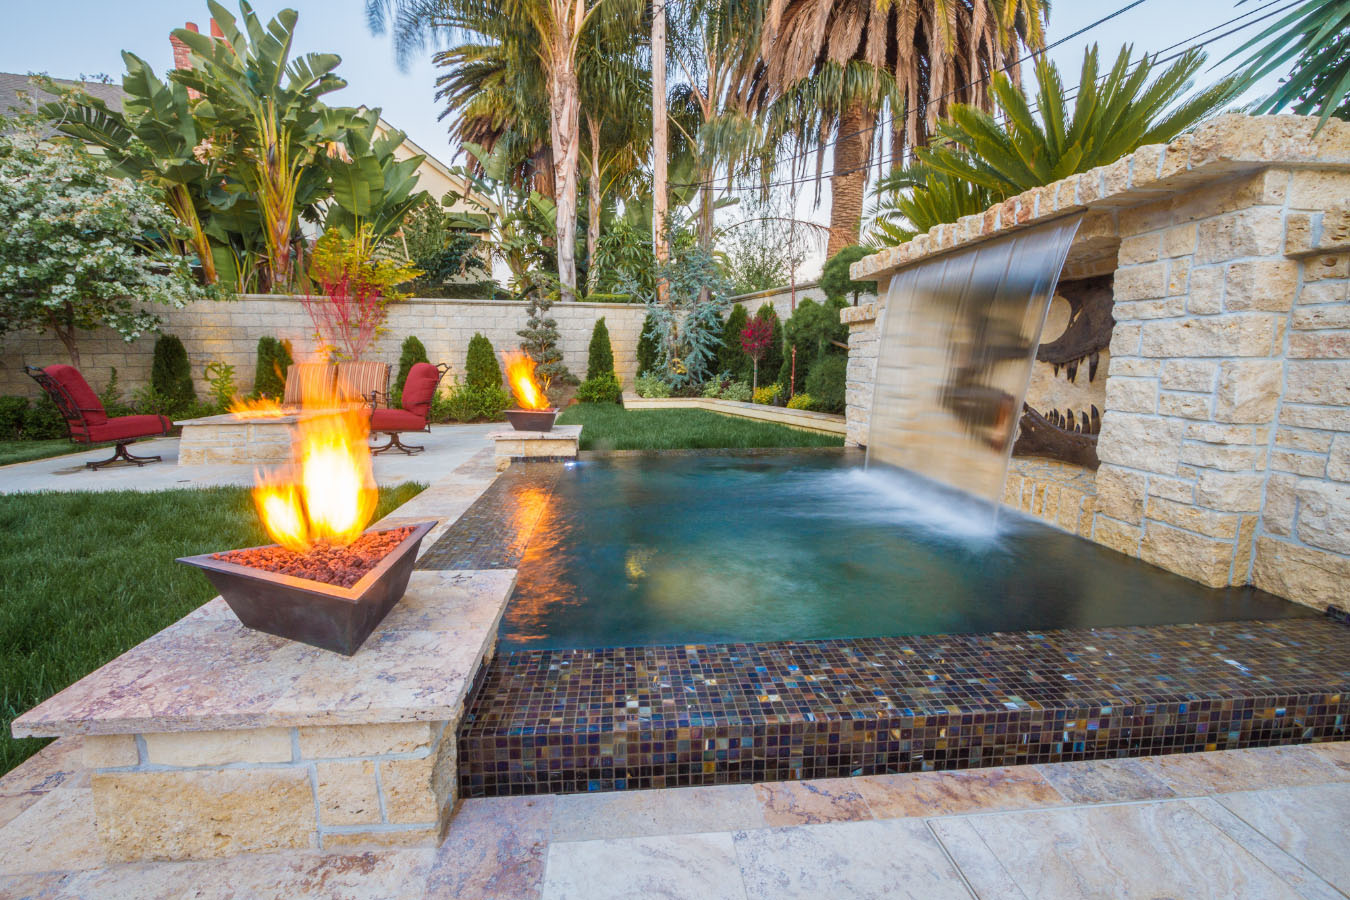 spa-and-fire-pits-at-dusk-dana-point.jpg